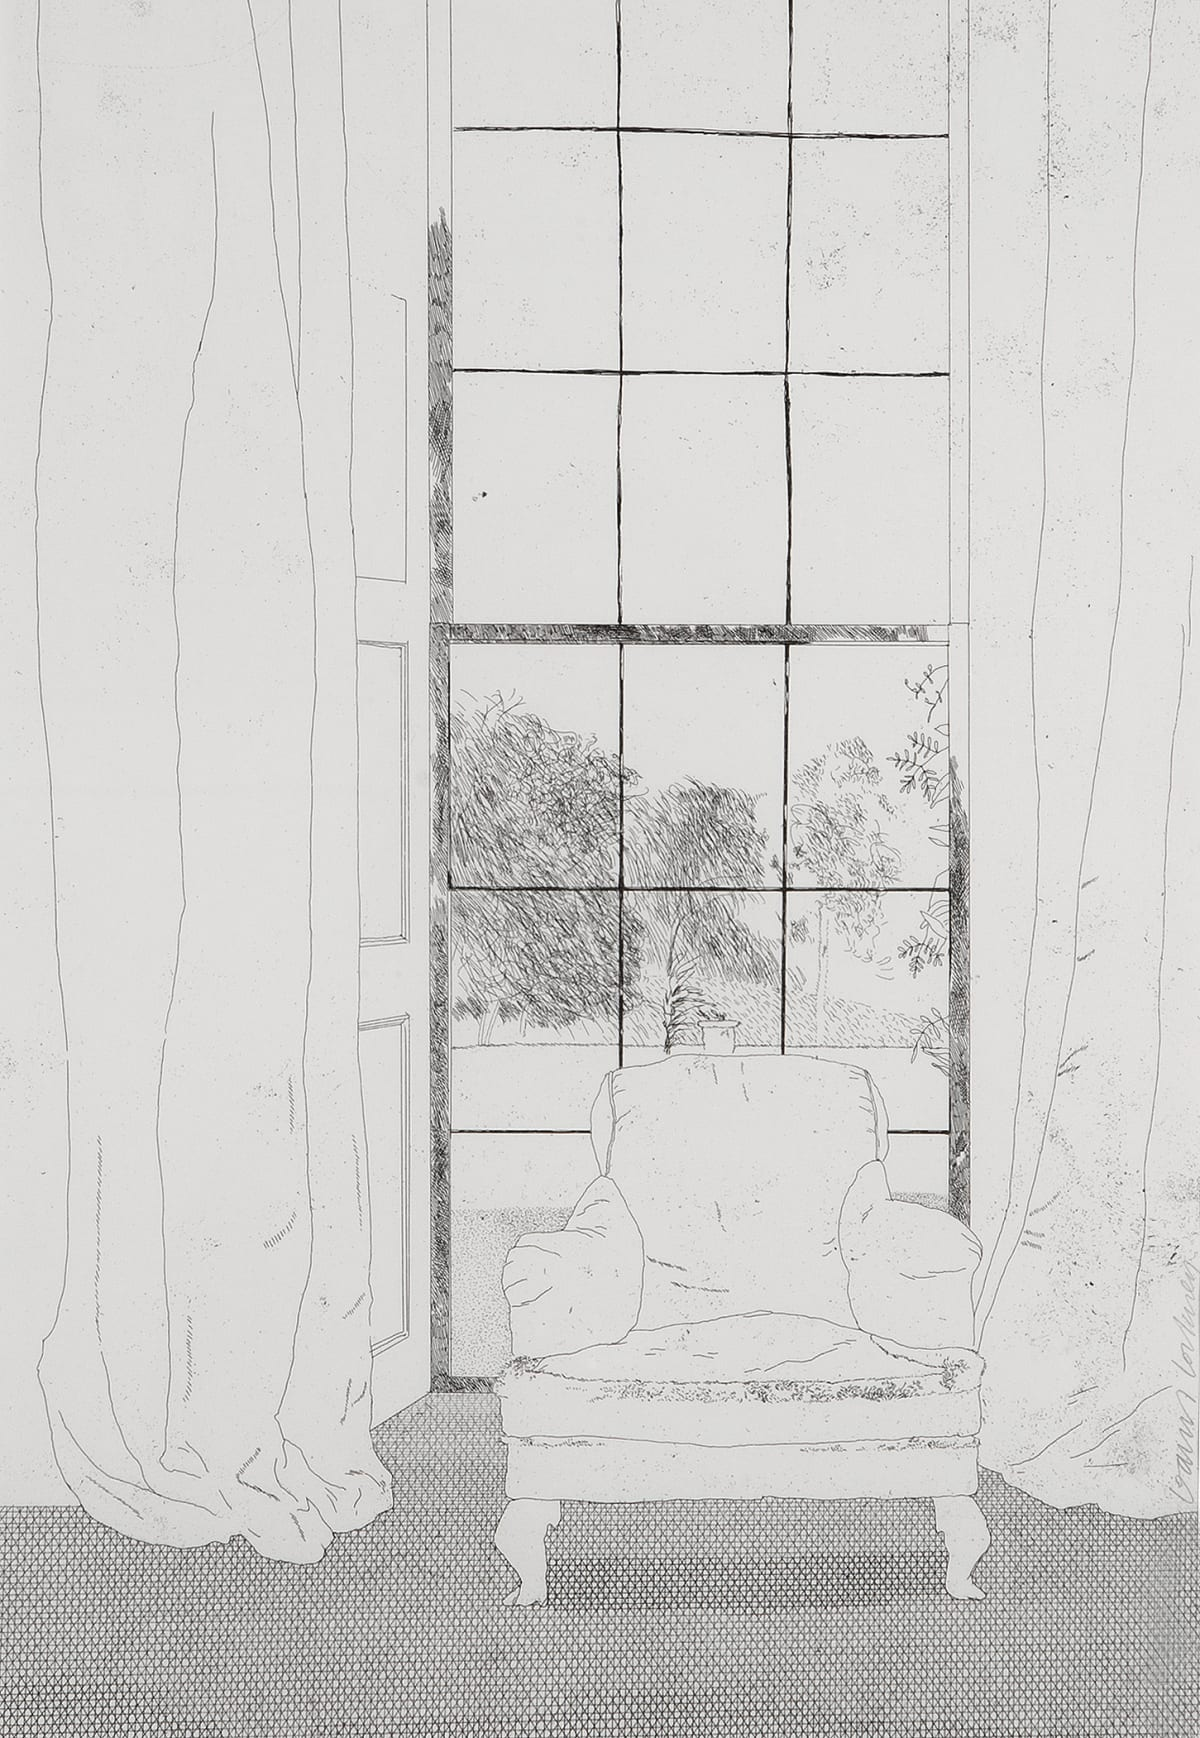 David Hockney Home, 1969 Etching Image Size: 44.3 x 31.1 cm / Paper Size: 45.6 x 31.1 cm Edition of 100